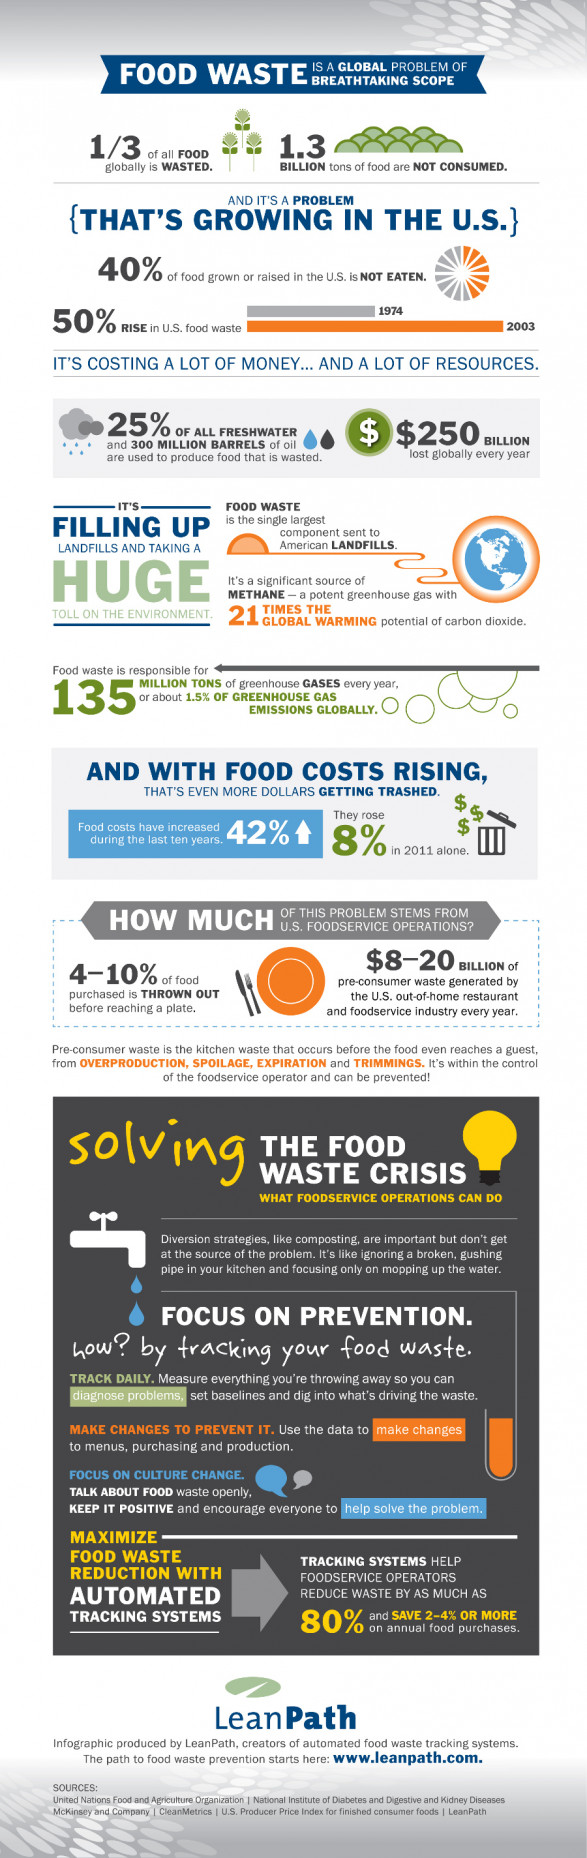 Food Waste Crisis: What Foodservice Operators Can Do